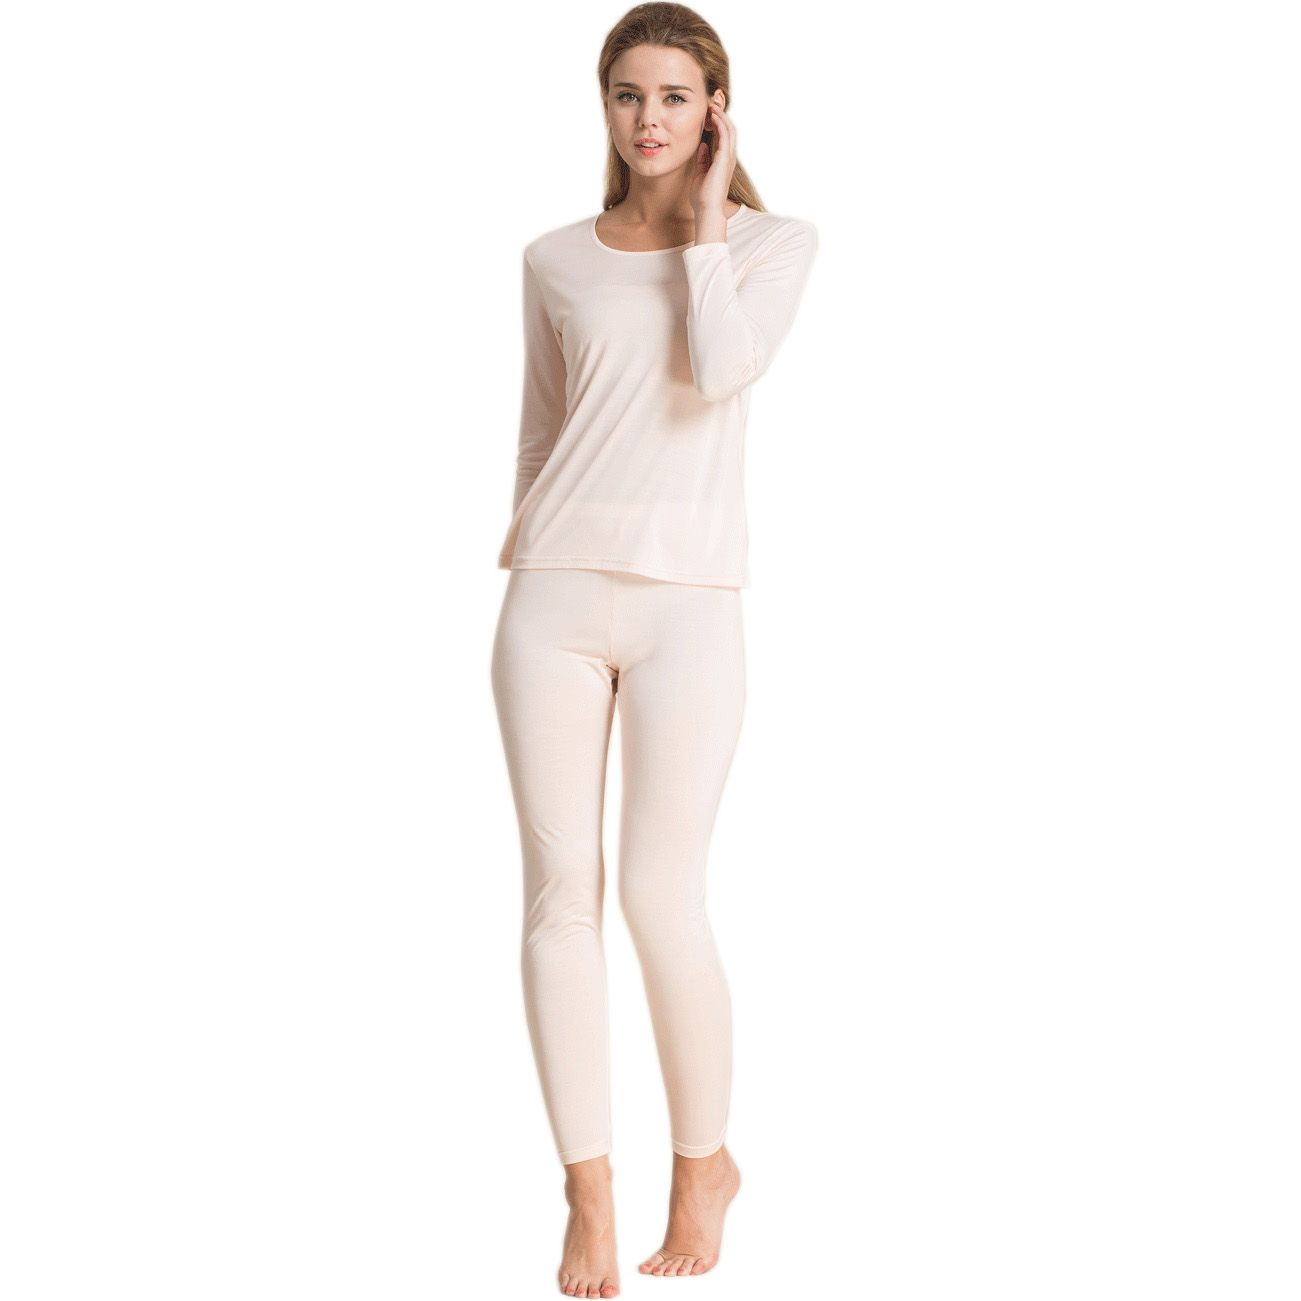 100% Pure Silk Women's Long Johns Set Ladies Warm Clothing Femme ...